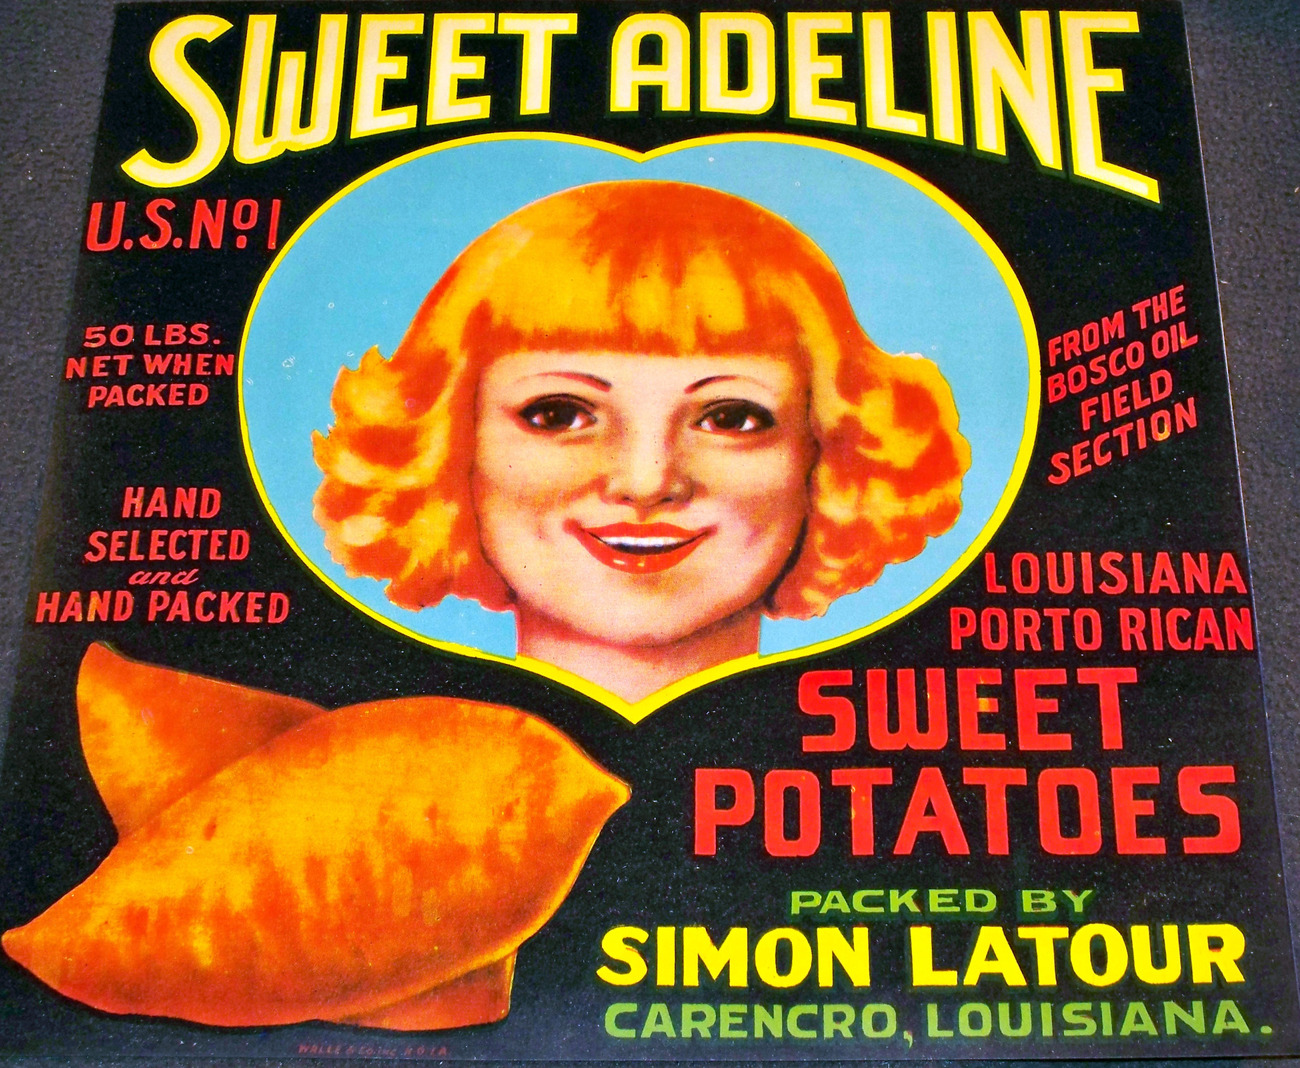 Heart! Sweet Adeline Crate Label, 1930's